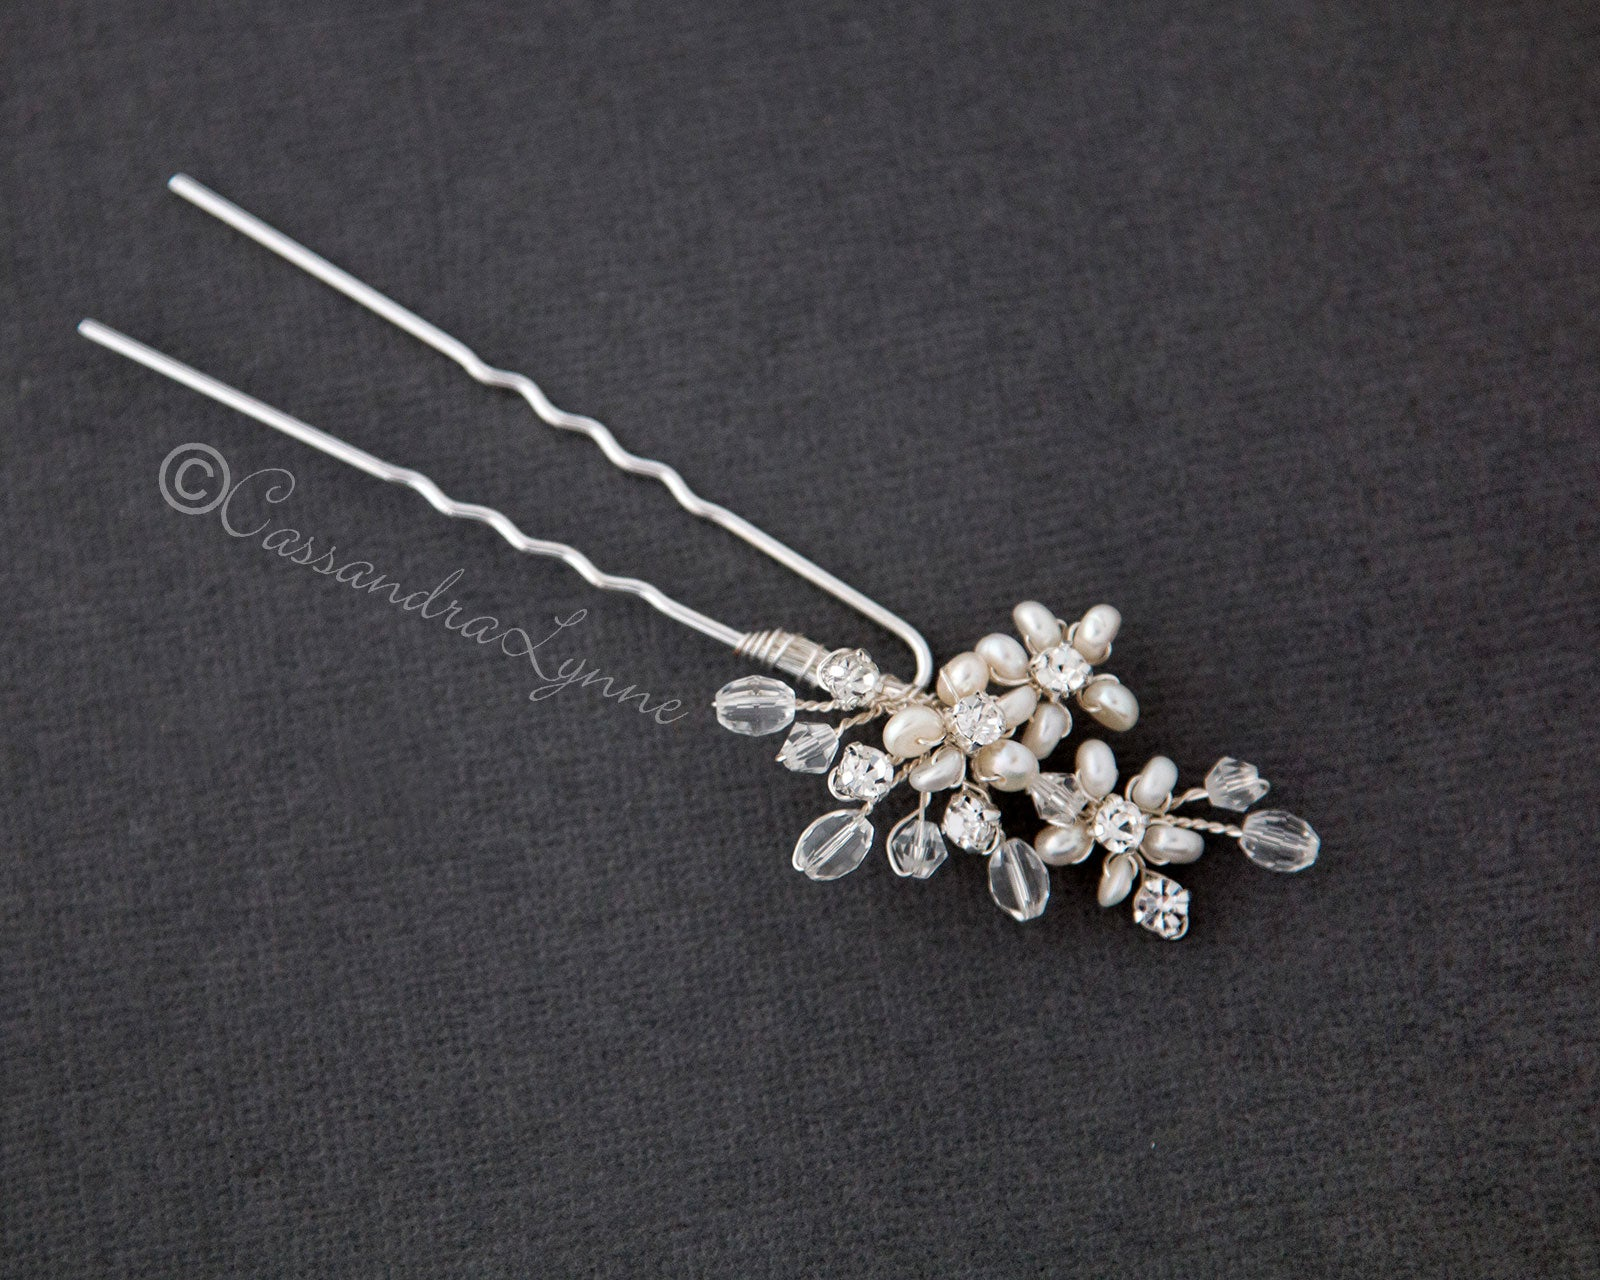 Bridal Hair Pin with Pearl Flowers and Crystal Beads